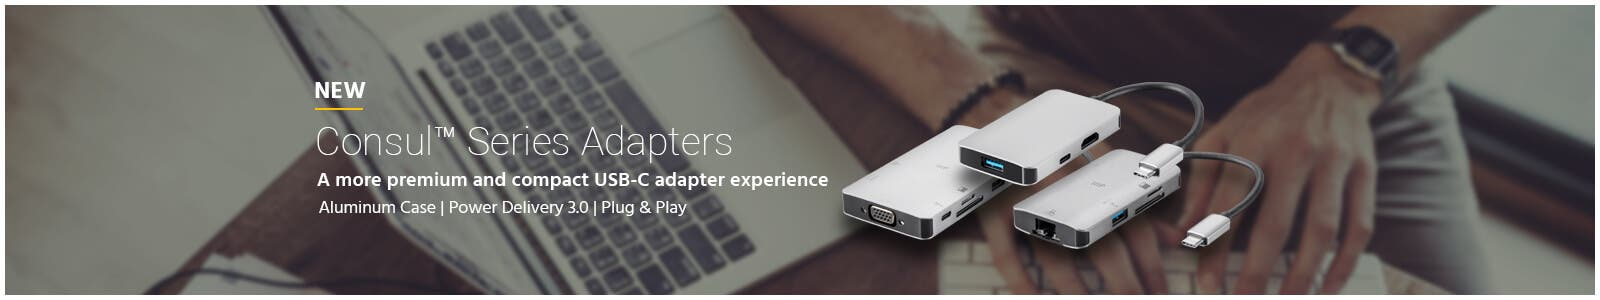 new, consul series adapters, a more premium and compact USB-C adapter experience